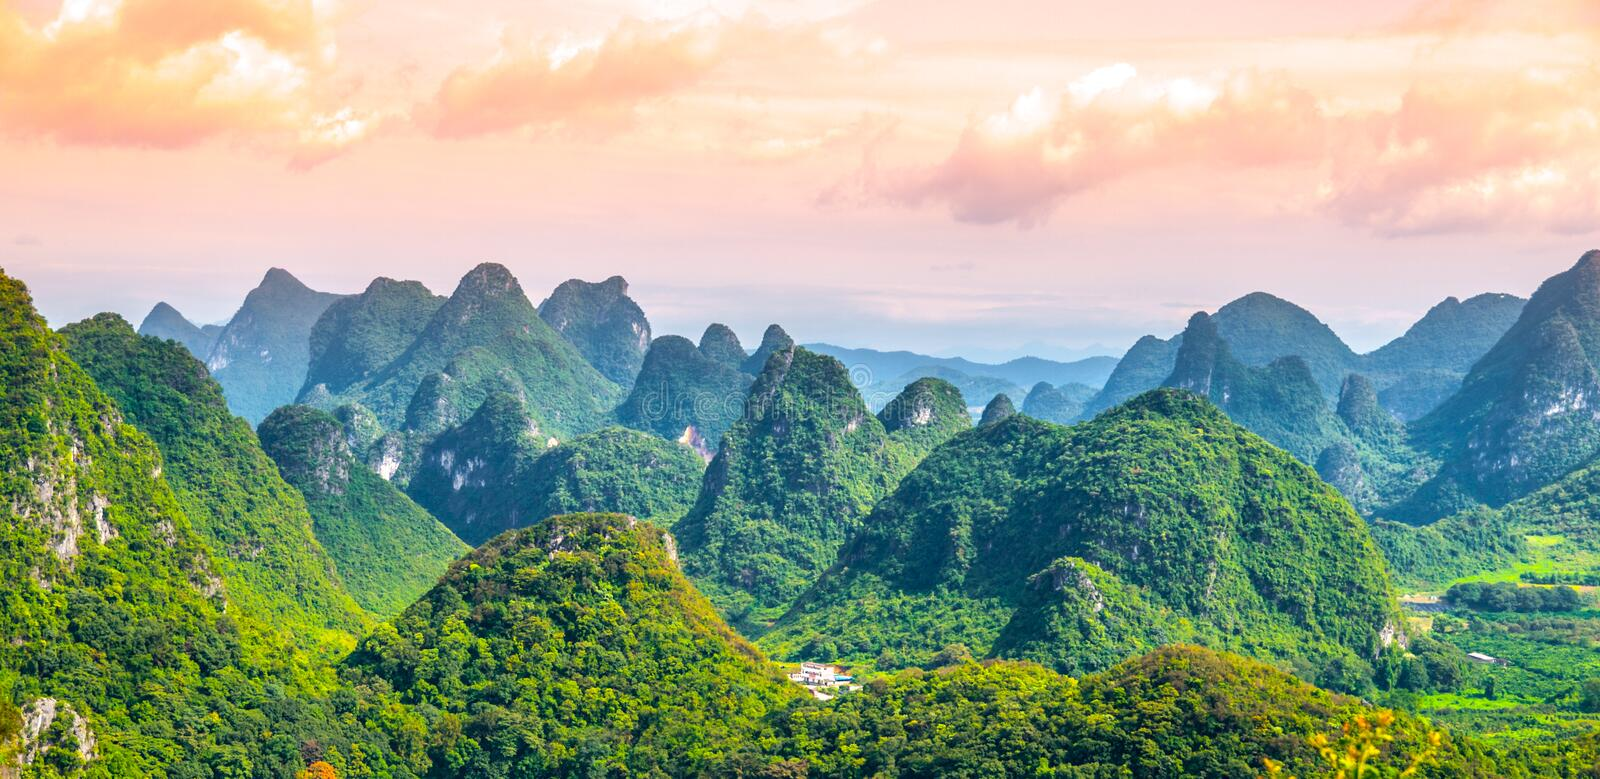 Panoramic view of landscape with karst peaks around Yangshuo County and Li River, Guangxi Province, China.  royalty free stock photo